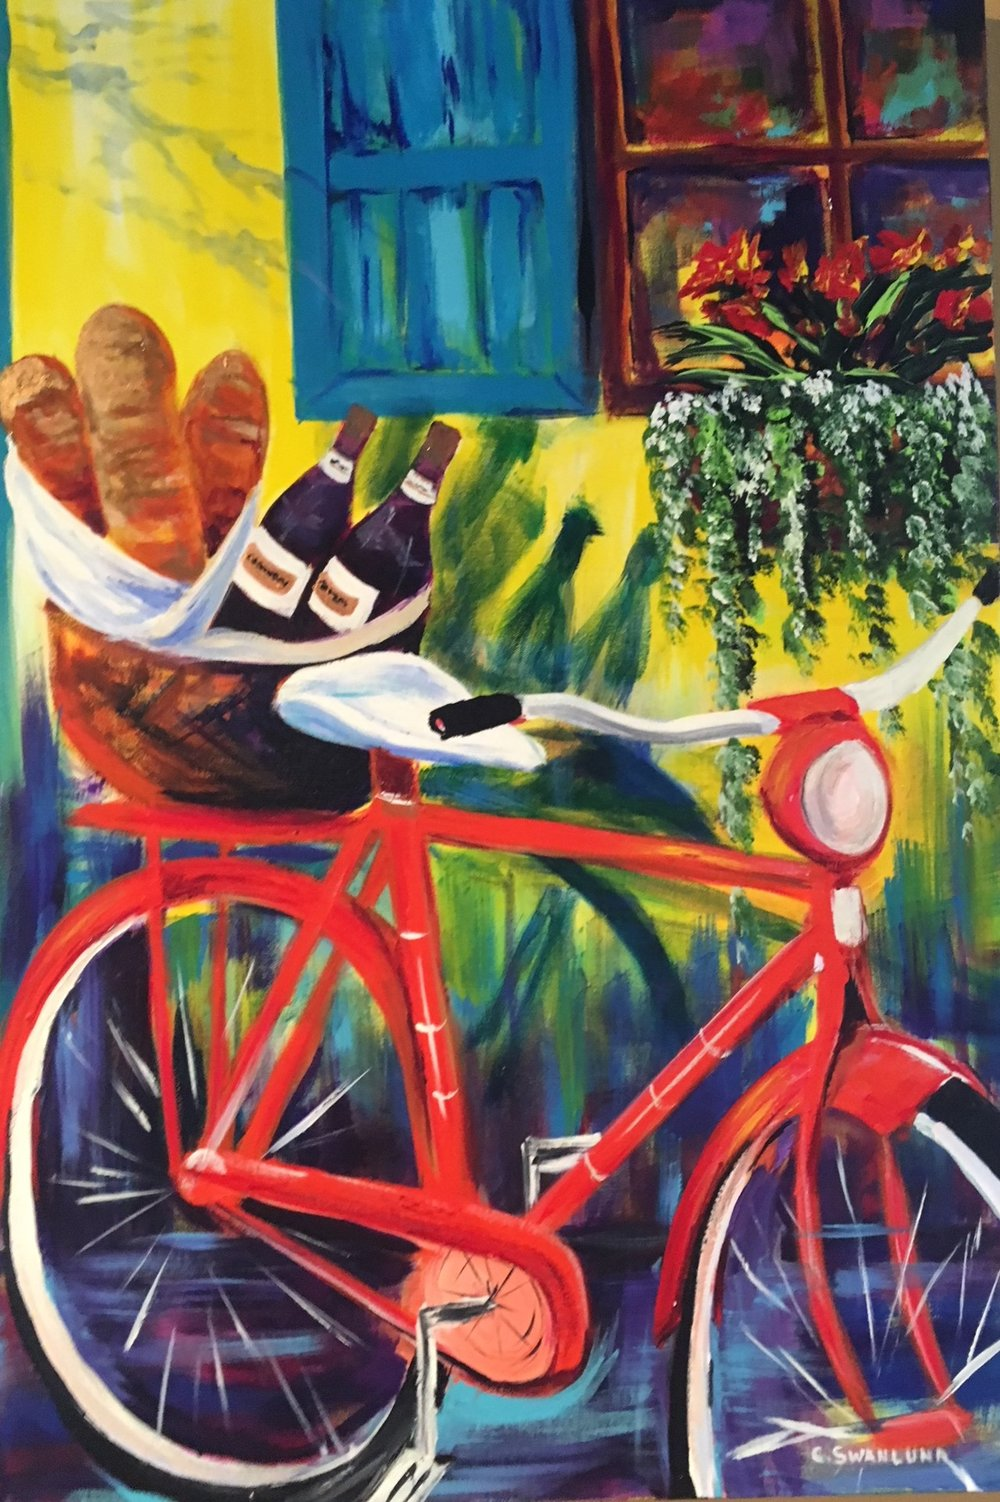 available- $900.00 - Livraison A Velo- 24 by 36 -available at The Market Bistro, Canmore Alberta